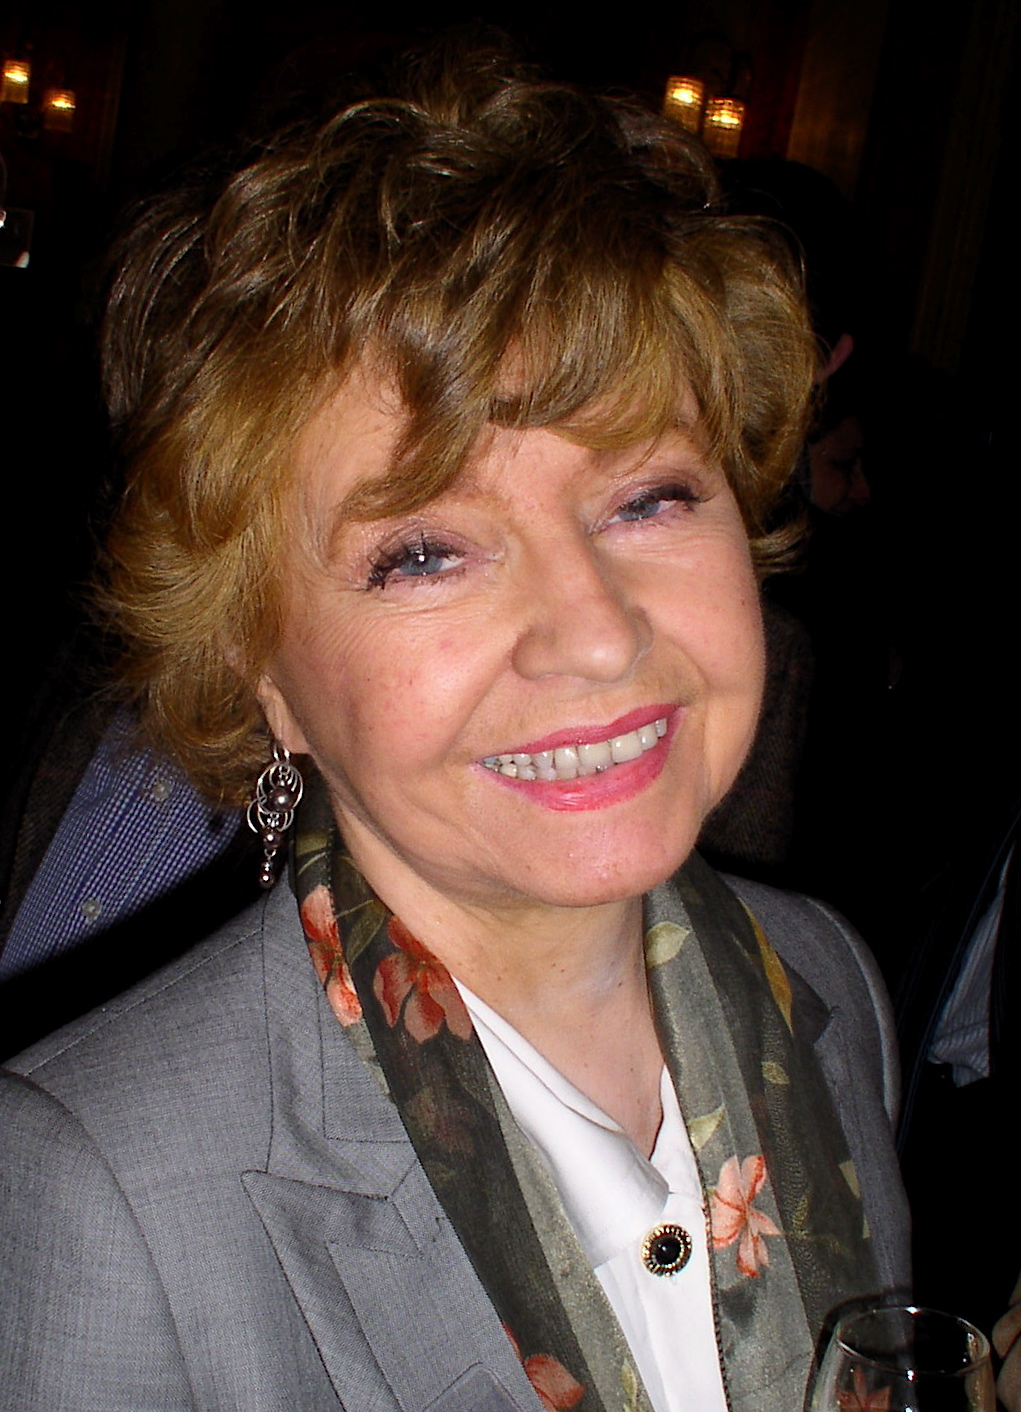 Prunella Scales (born 1932)